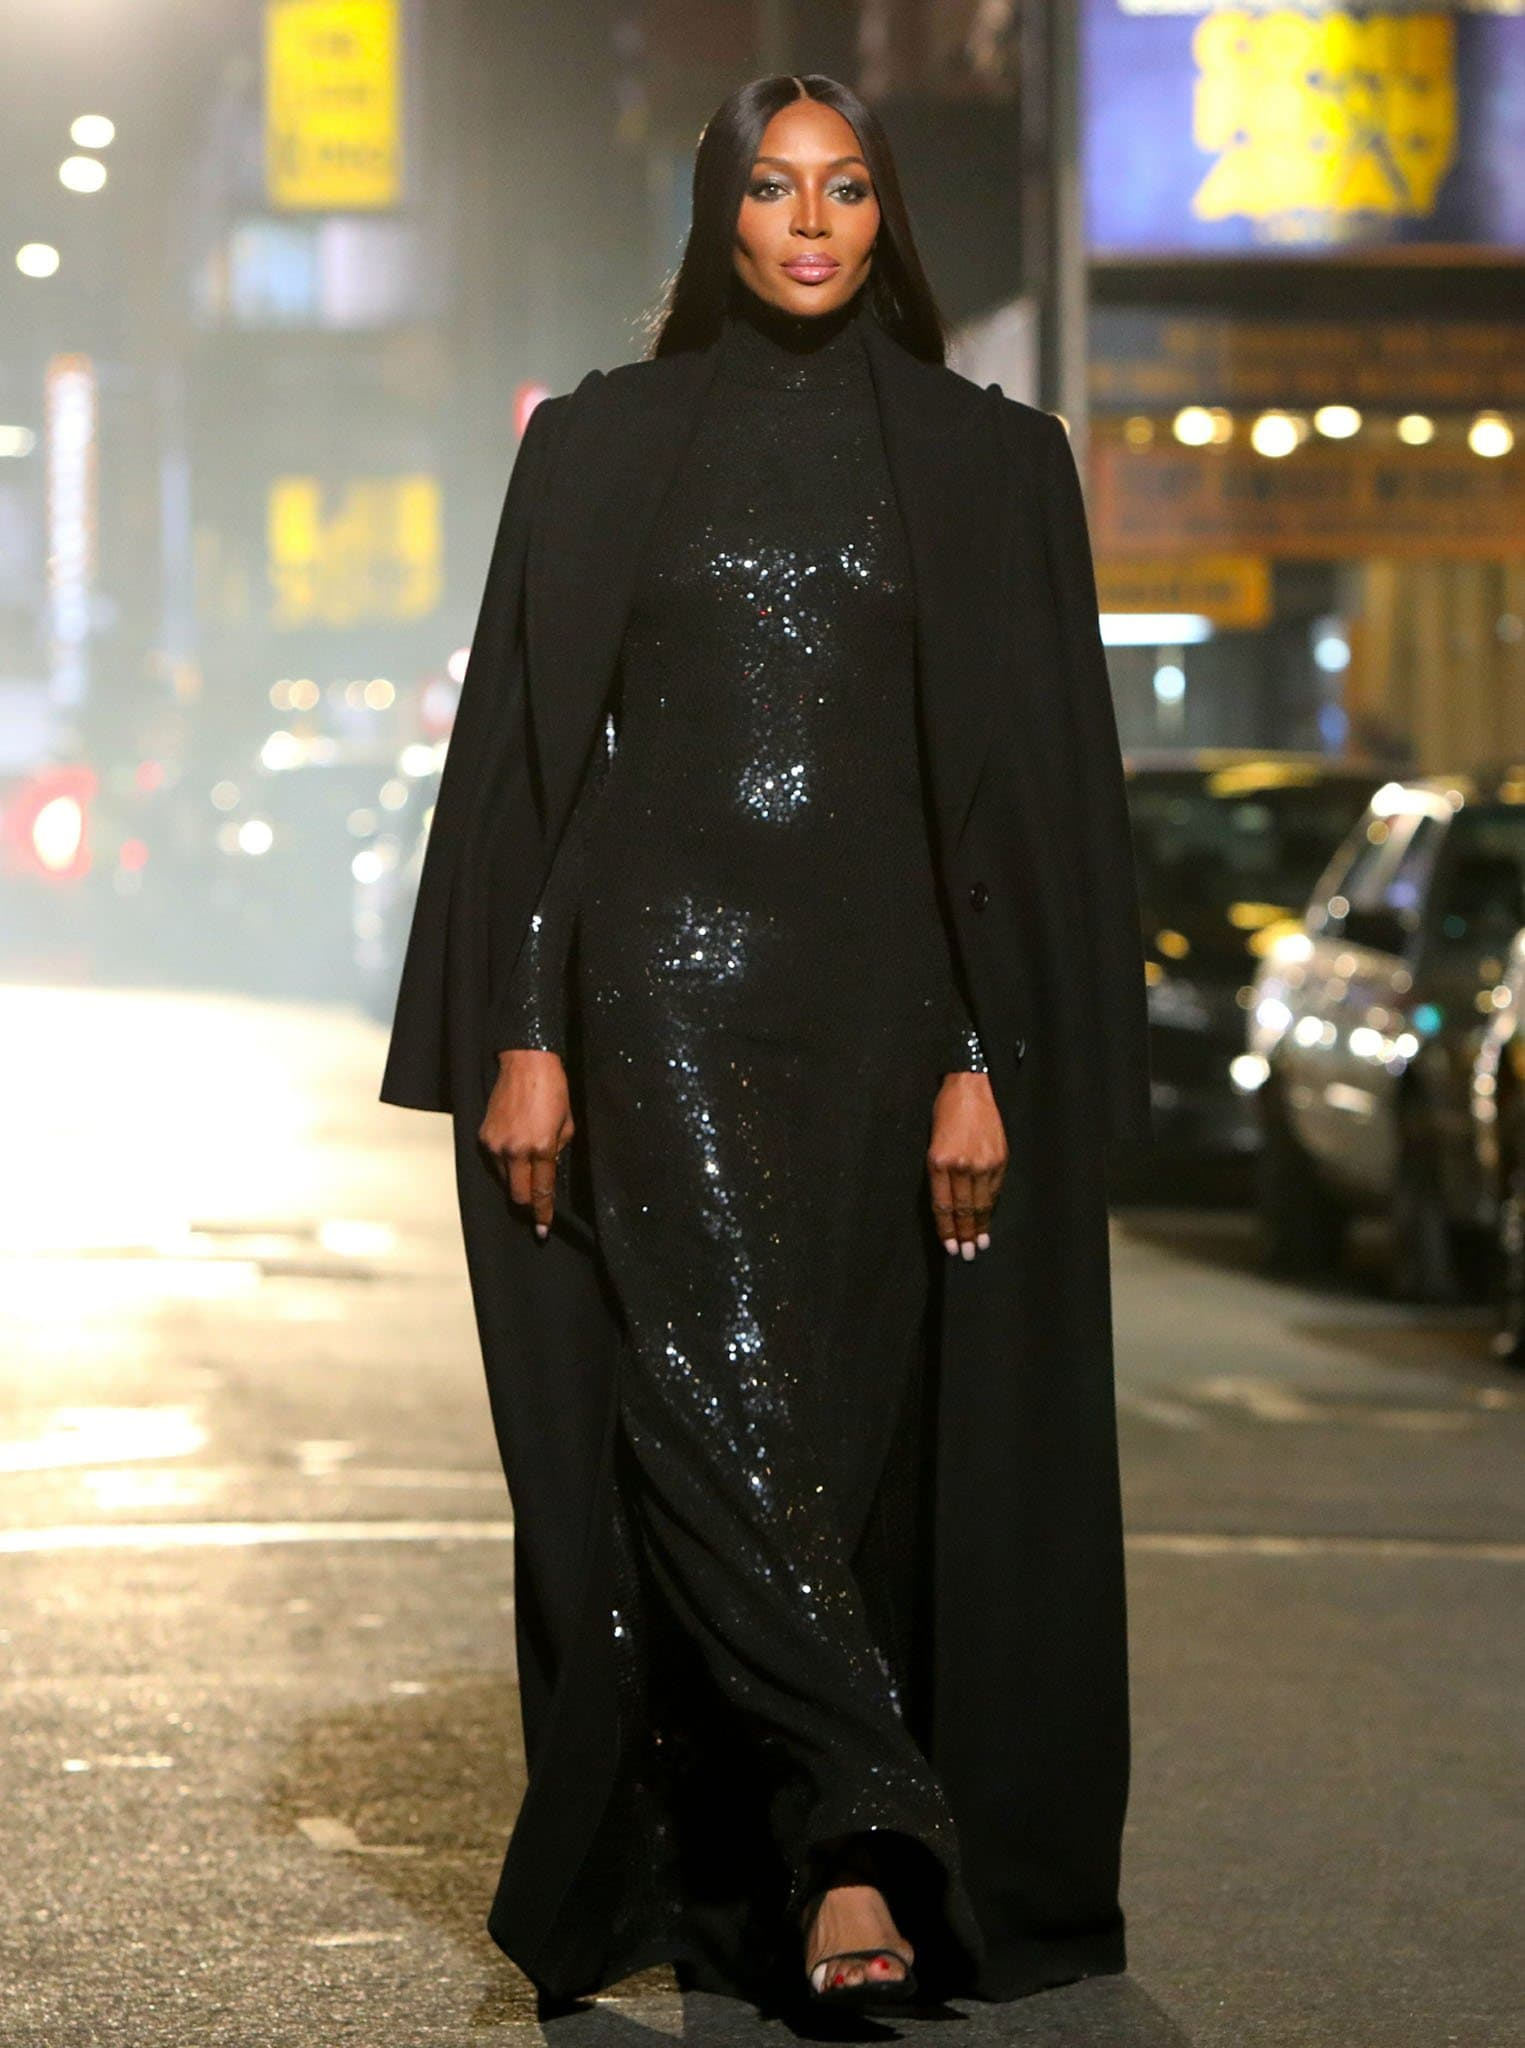 Naomi Campbell looks regal in a long black sequined gown and floor-length coat